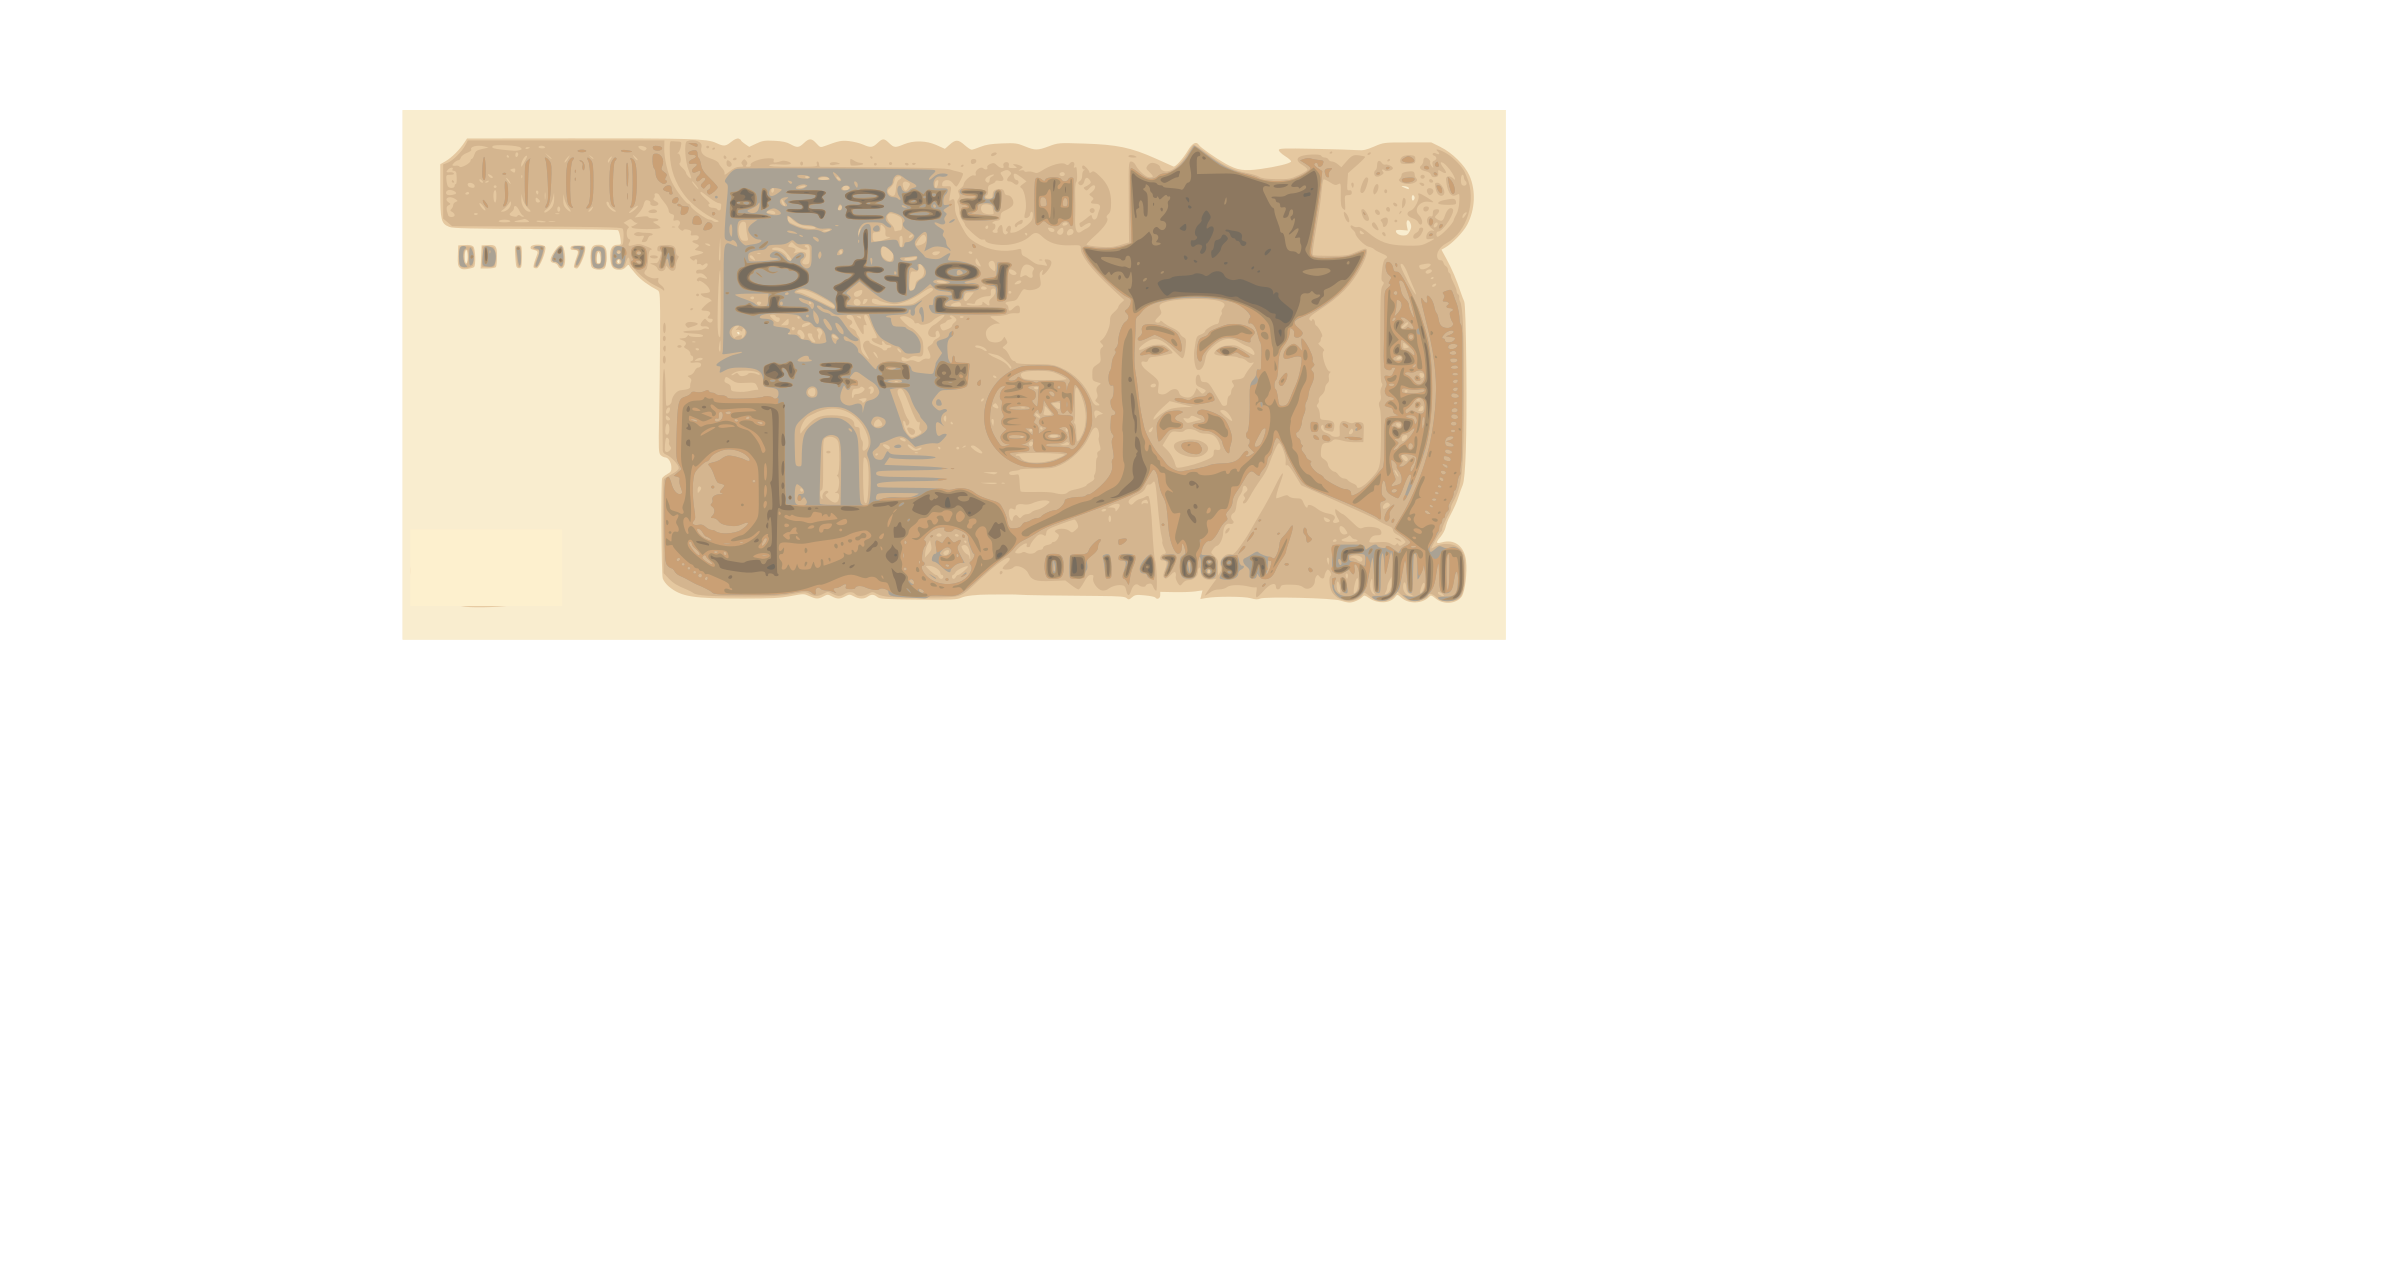 korean money 5000won front view by loveandread